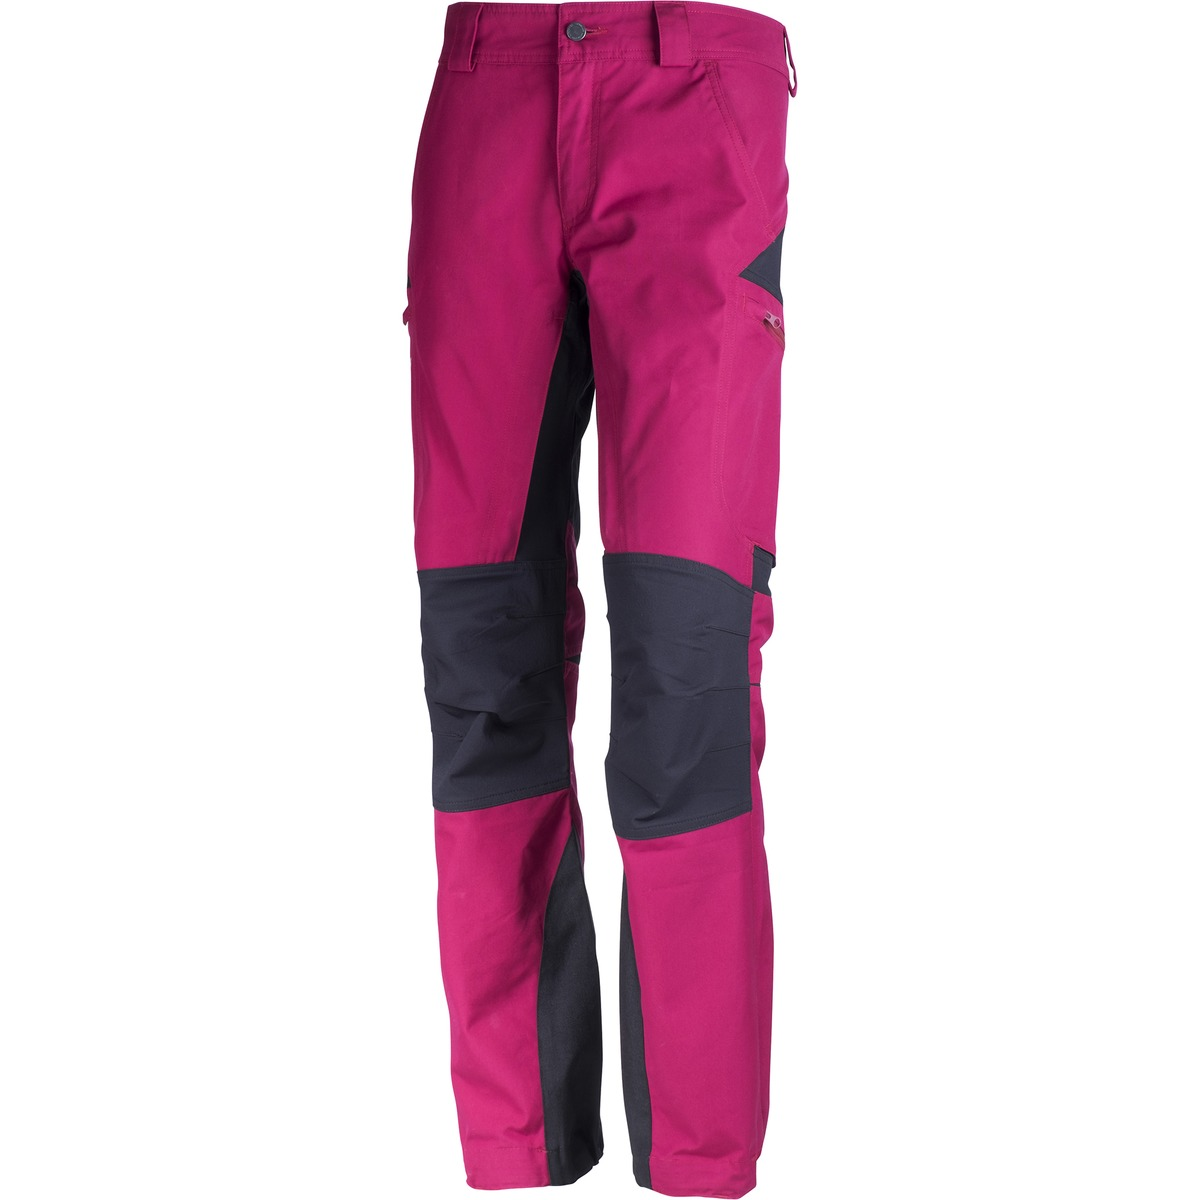 143981c3 Buy pant turbukse dame. Shop every store on the internet via PricePi.com  with purple